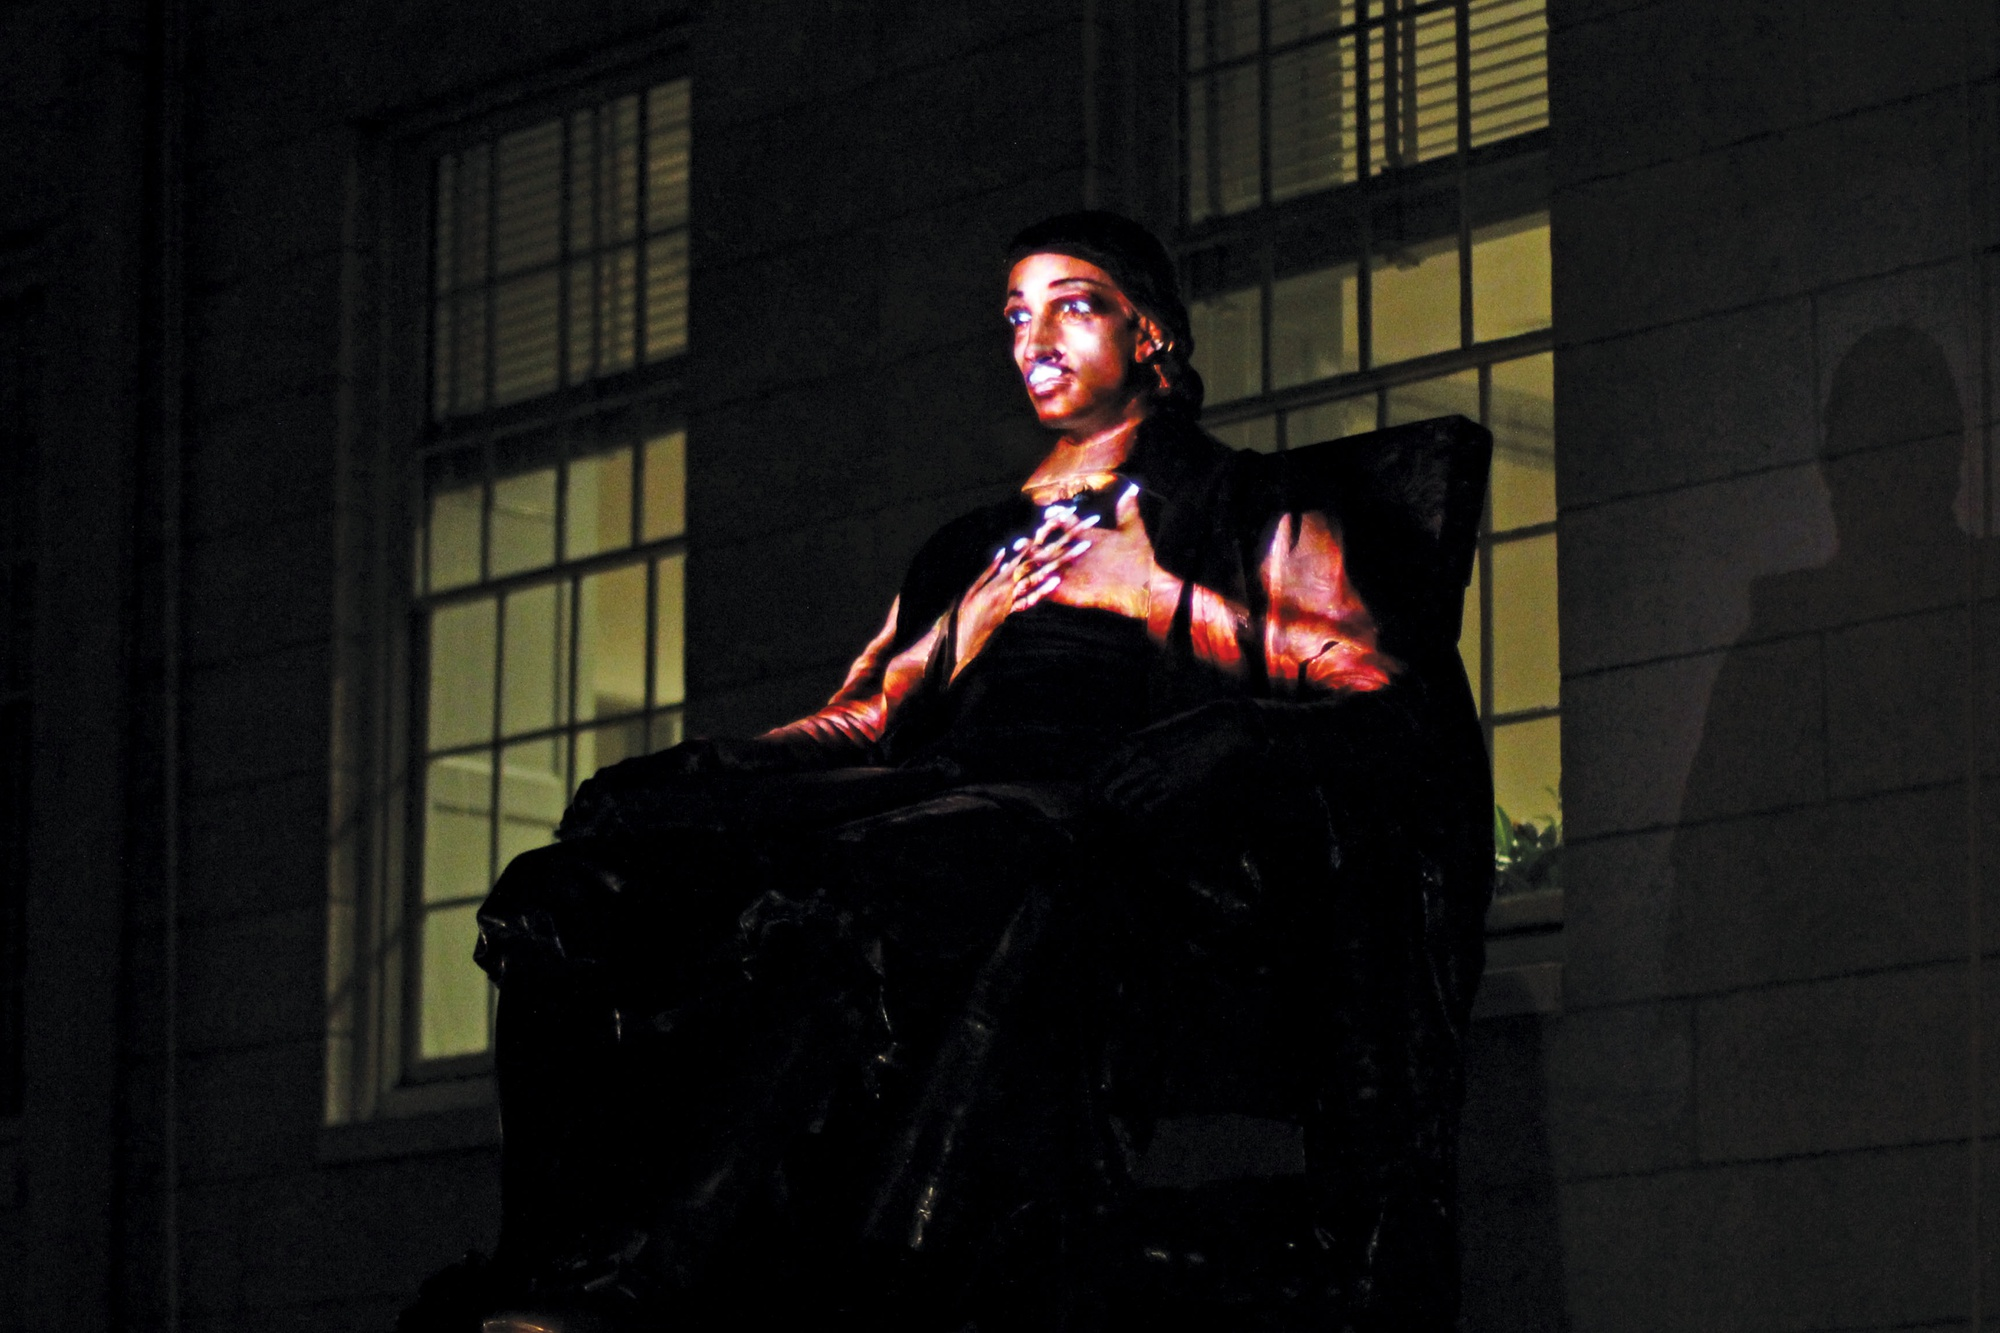 Artist Krzysztof Wodiczko projects recorded videos of students on the John Harvard statue Tuesday night. Wodiczko used the statue as a medium through which to voice concerns about job security and fears about not being able to make a difference in the world, while drawing upon themes of loneliness and disconnection.